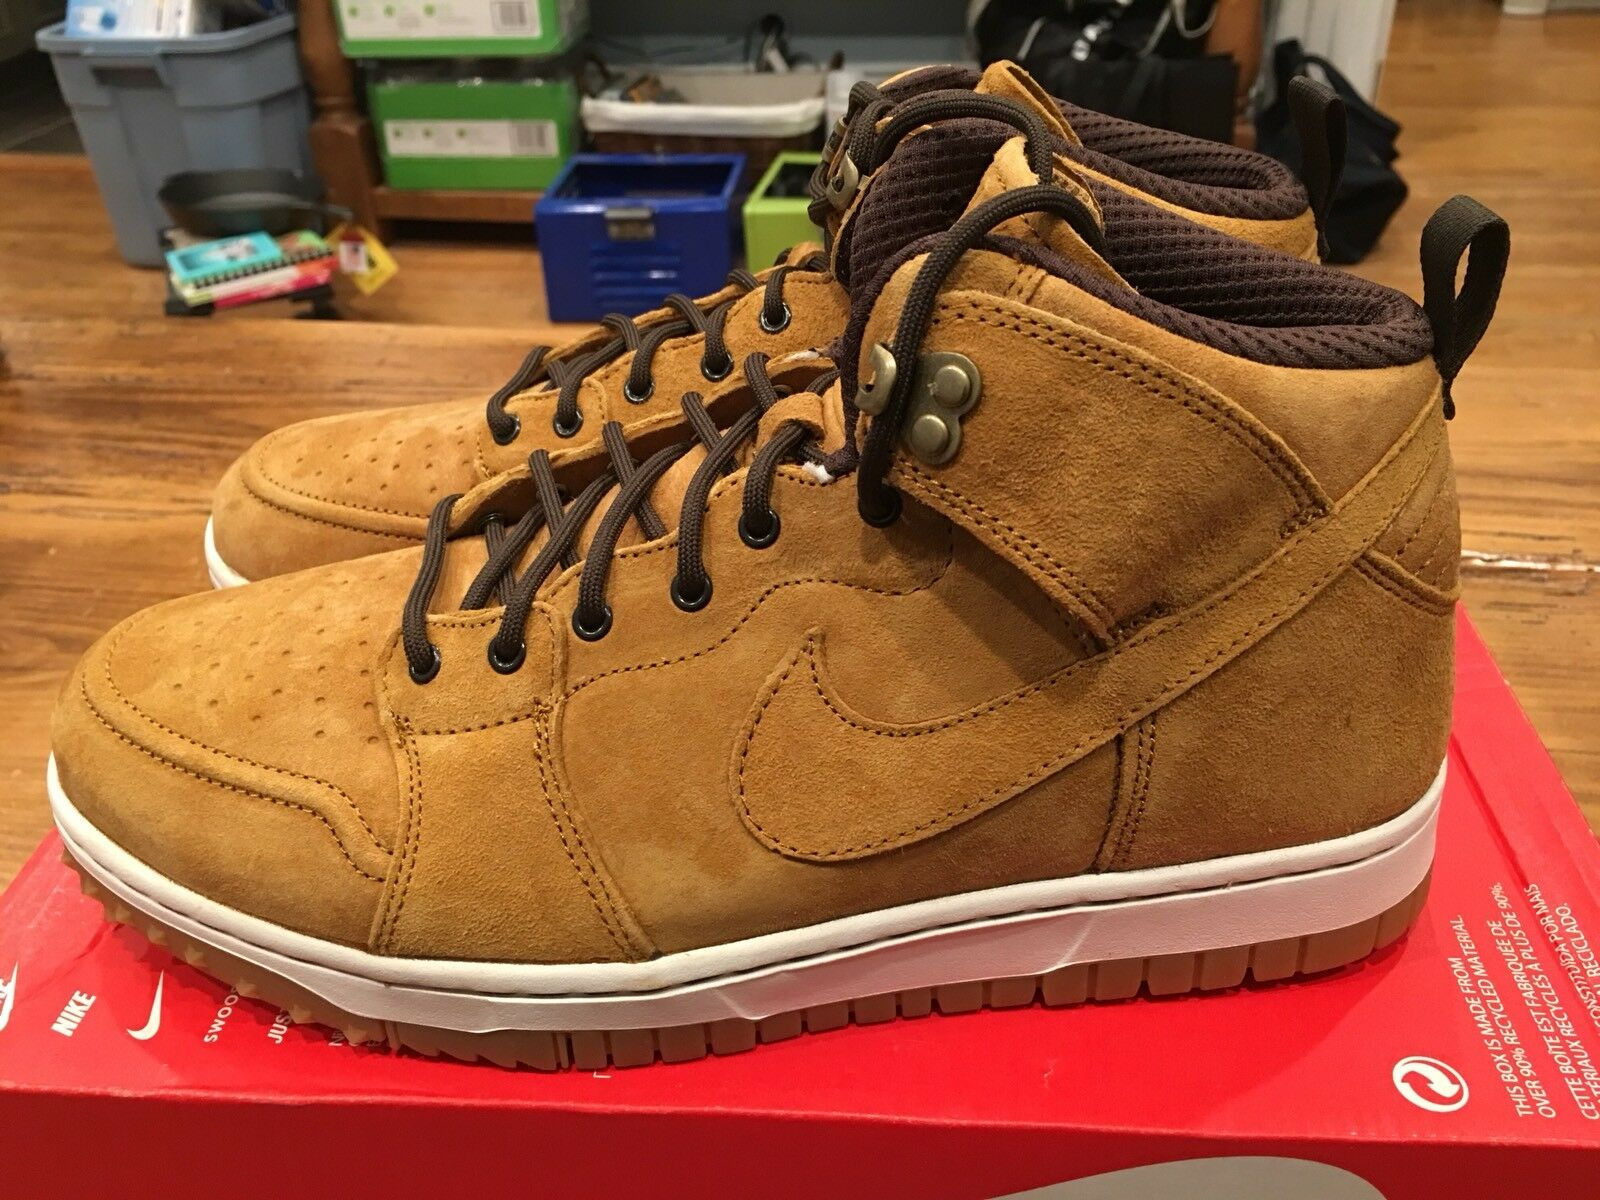 Nike Dunk CMFT WB Mens Sneaker boots - Size 8.5 Wheat Light Brown Color